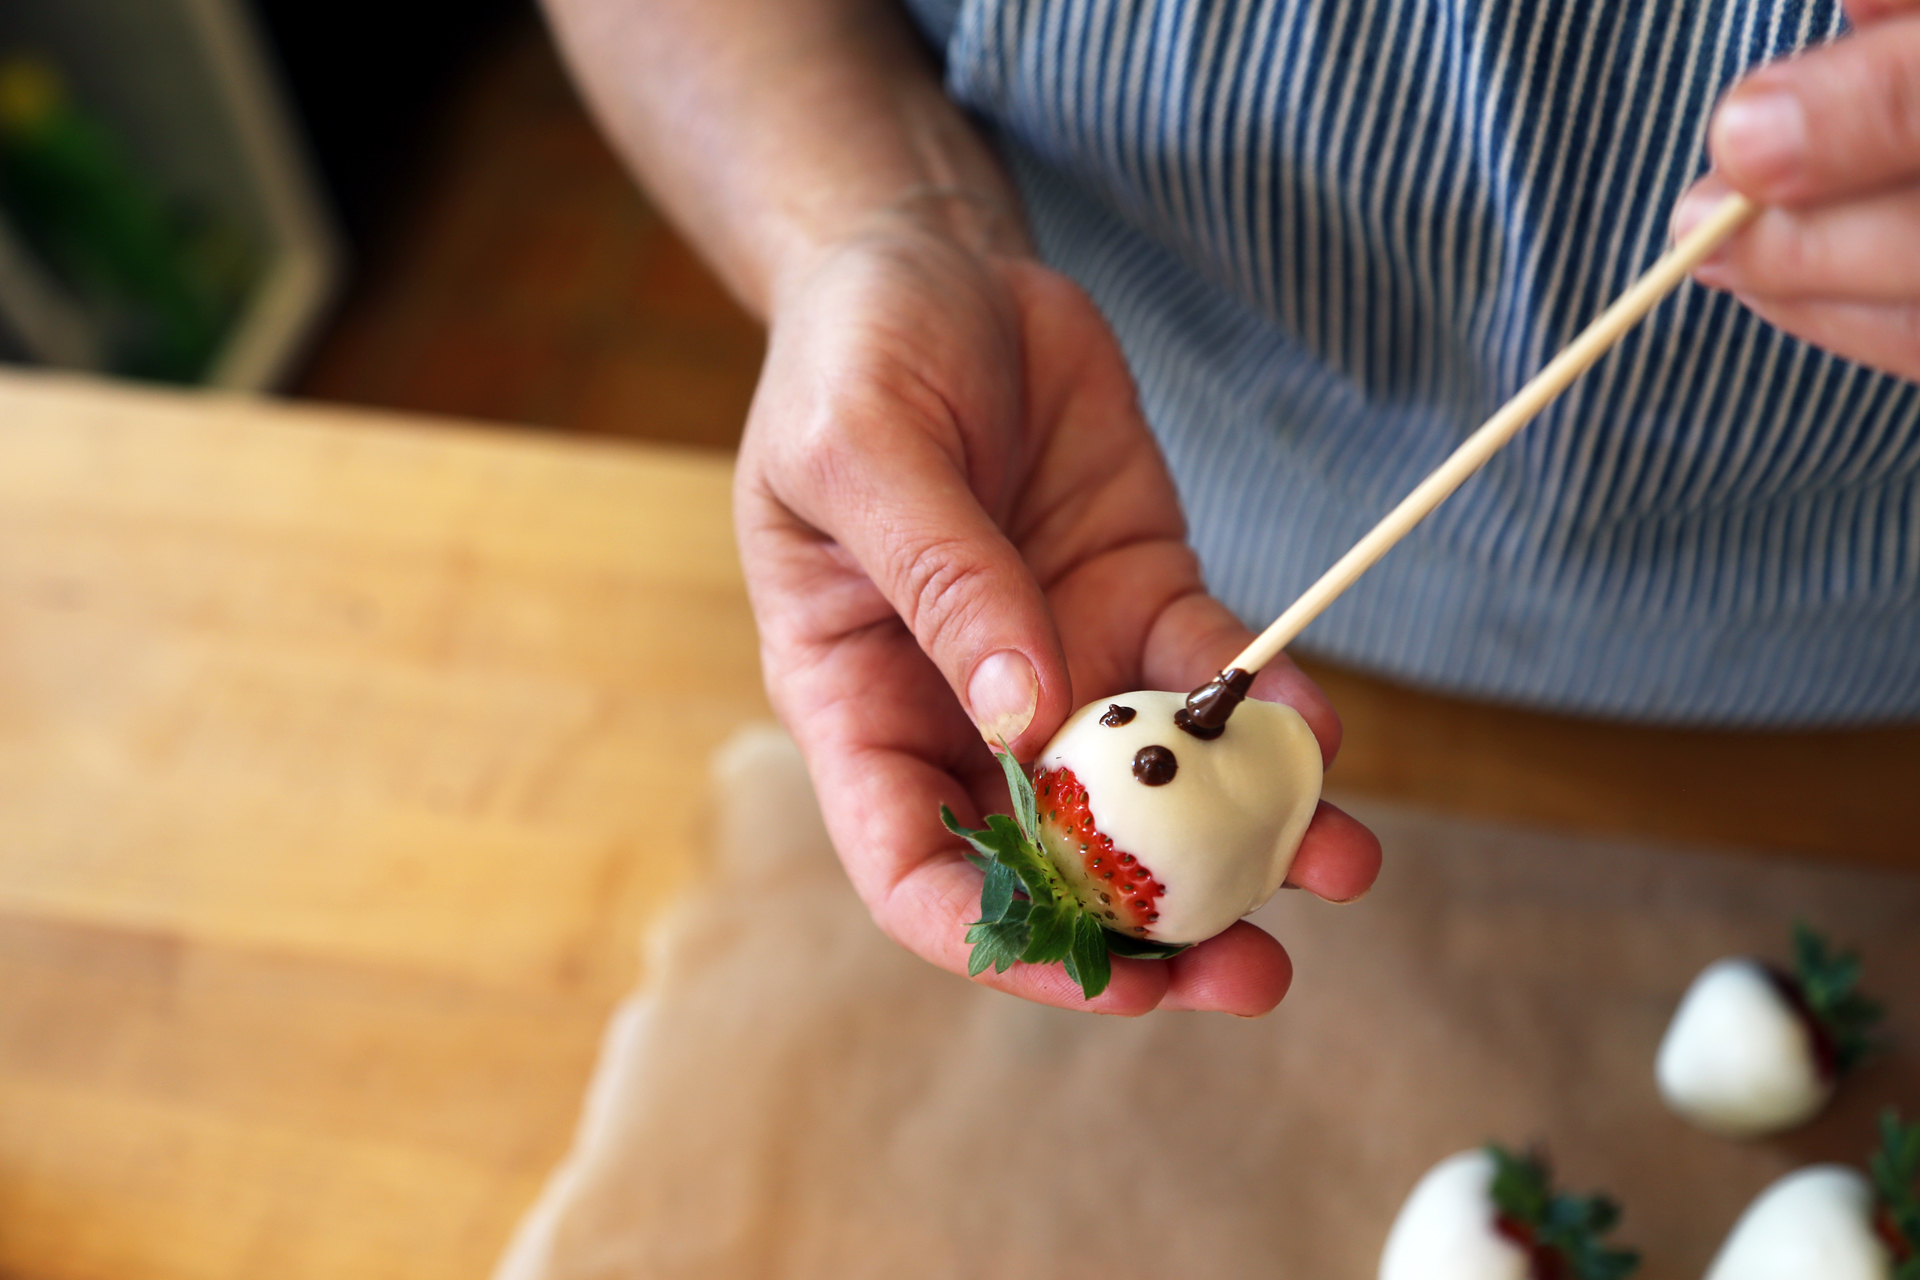 Using a toothpick or wooden skewer, draw eyes and a ghoulish mouth on each strawberry.